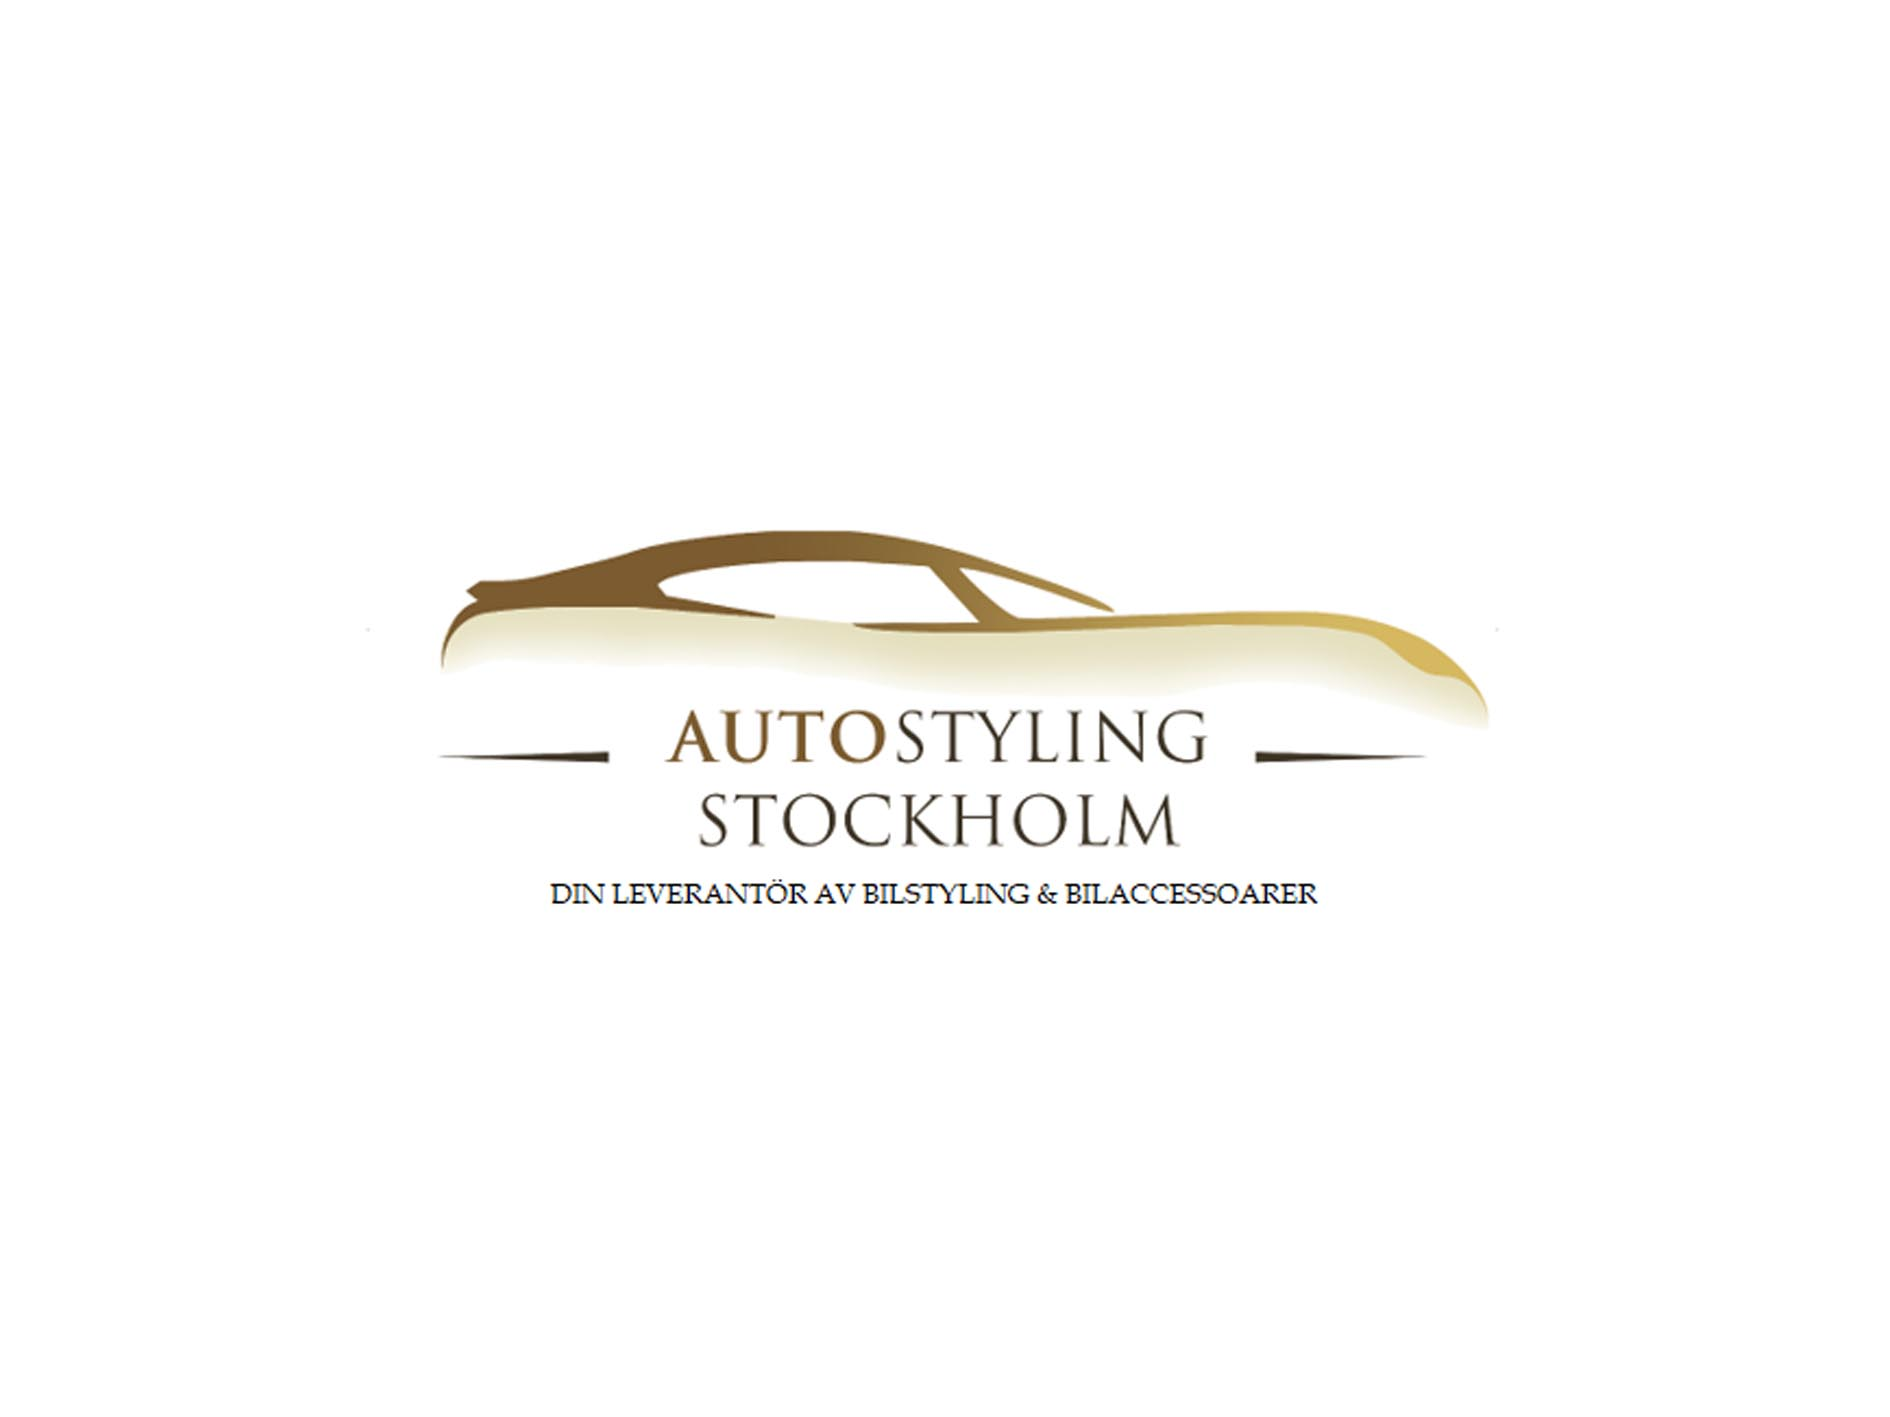 Autostyling Stockholm